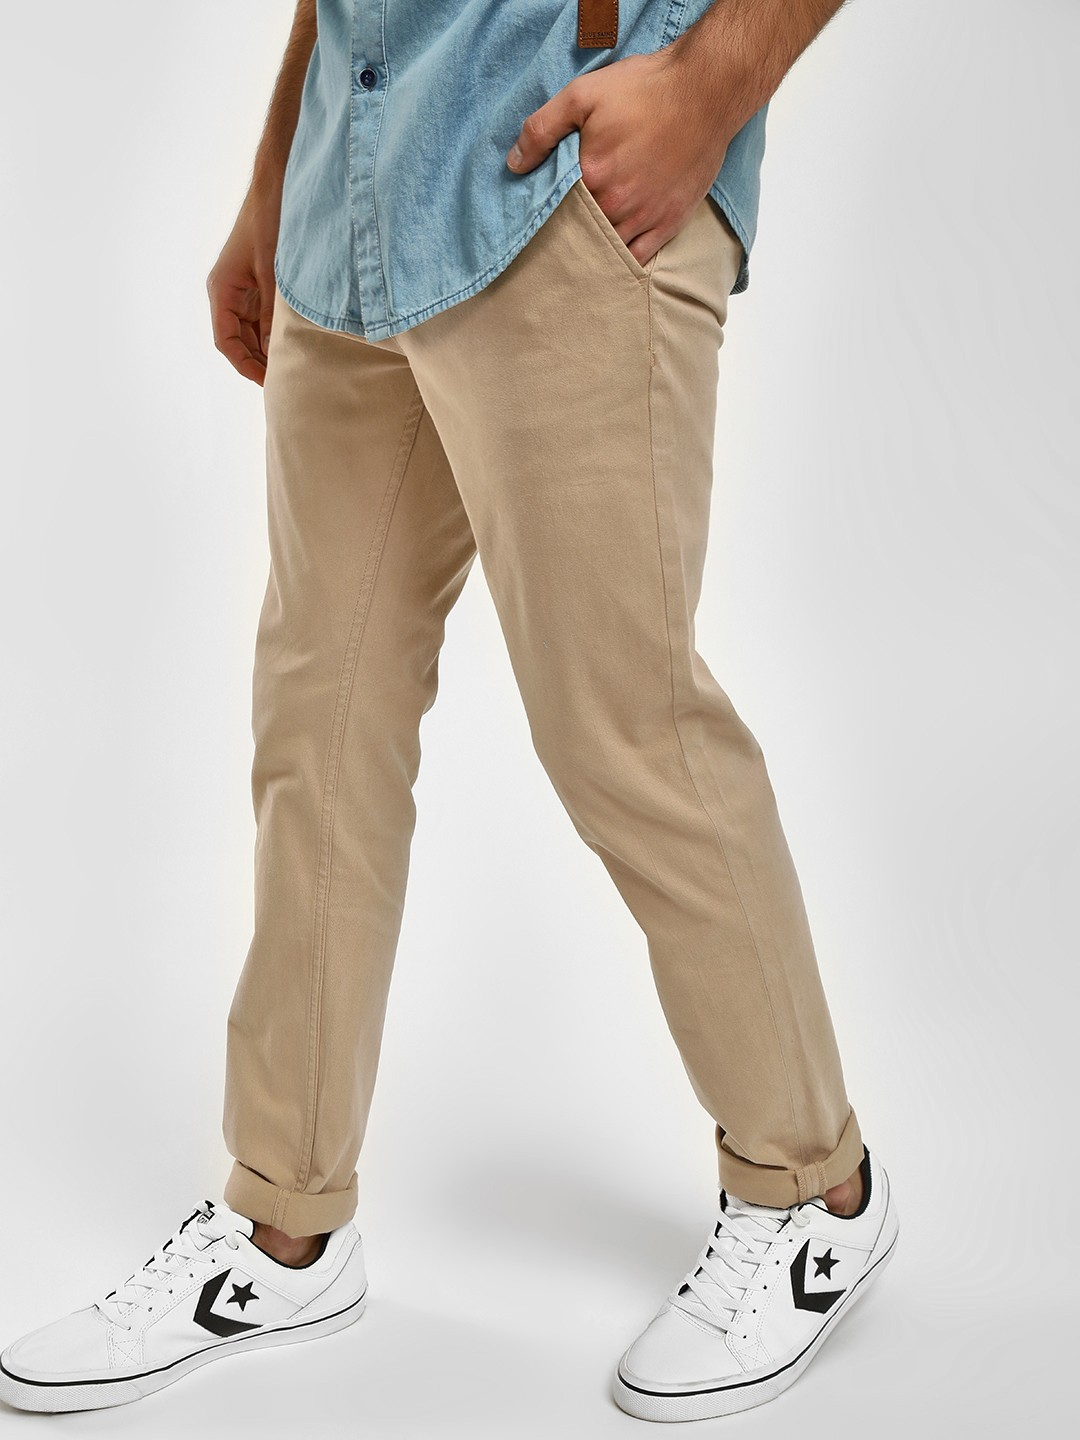 Blue Saint Beige Basic Slim Fit Chinos 1